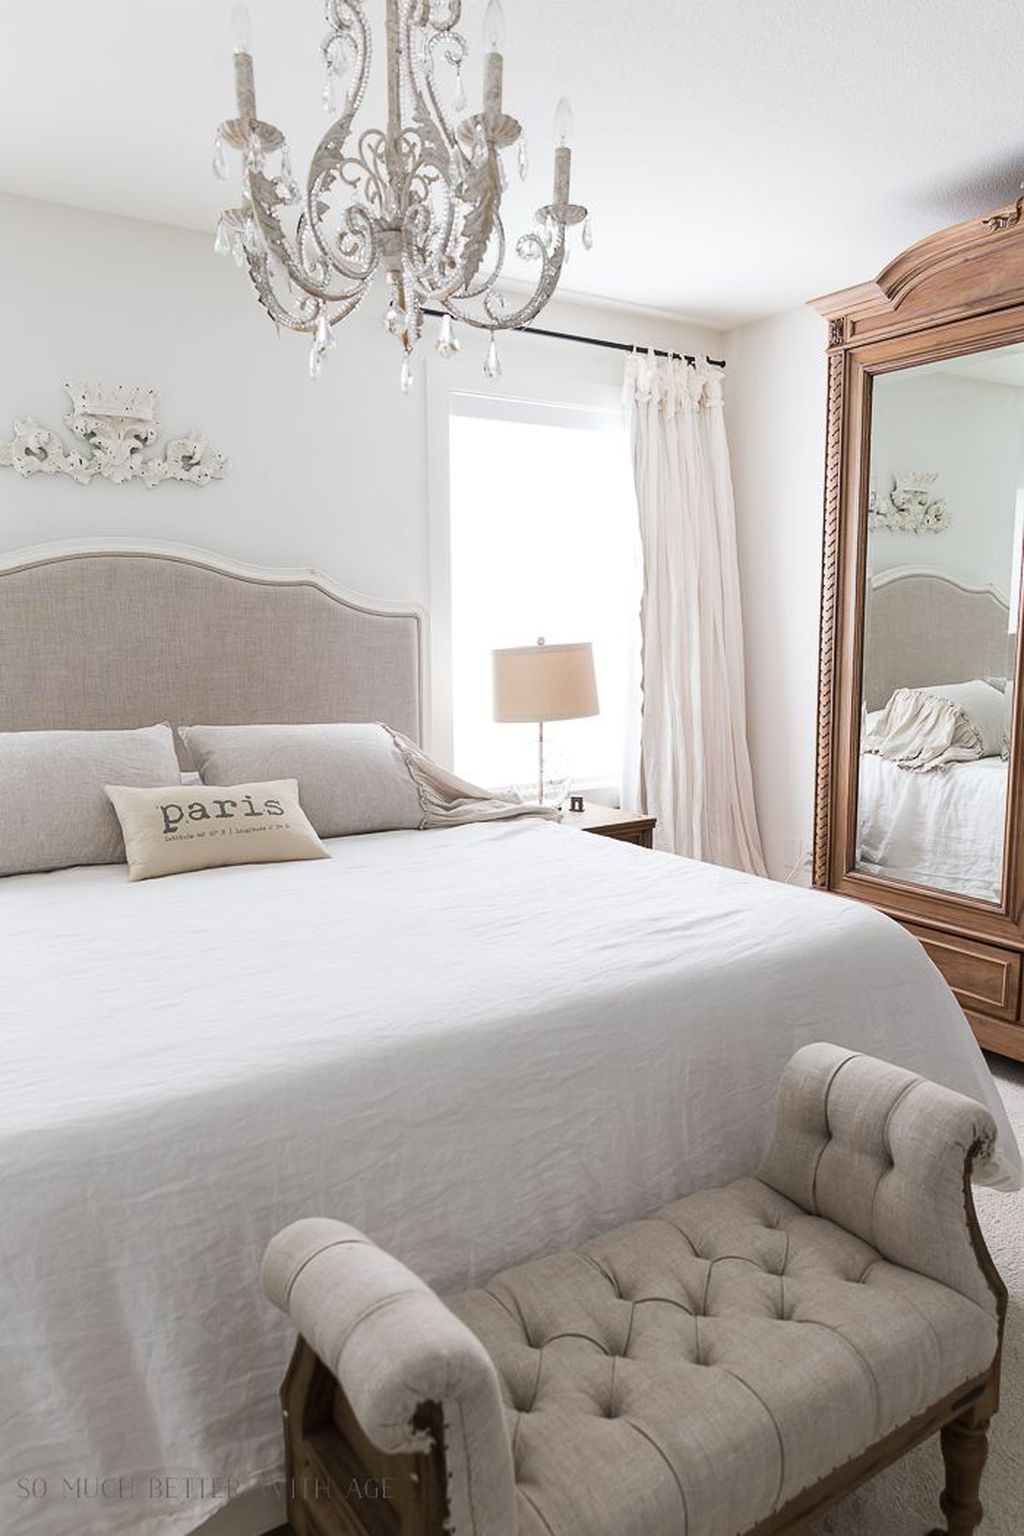 Stunning French Bedroom Decor Ideas That Will Inspire You 30